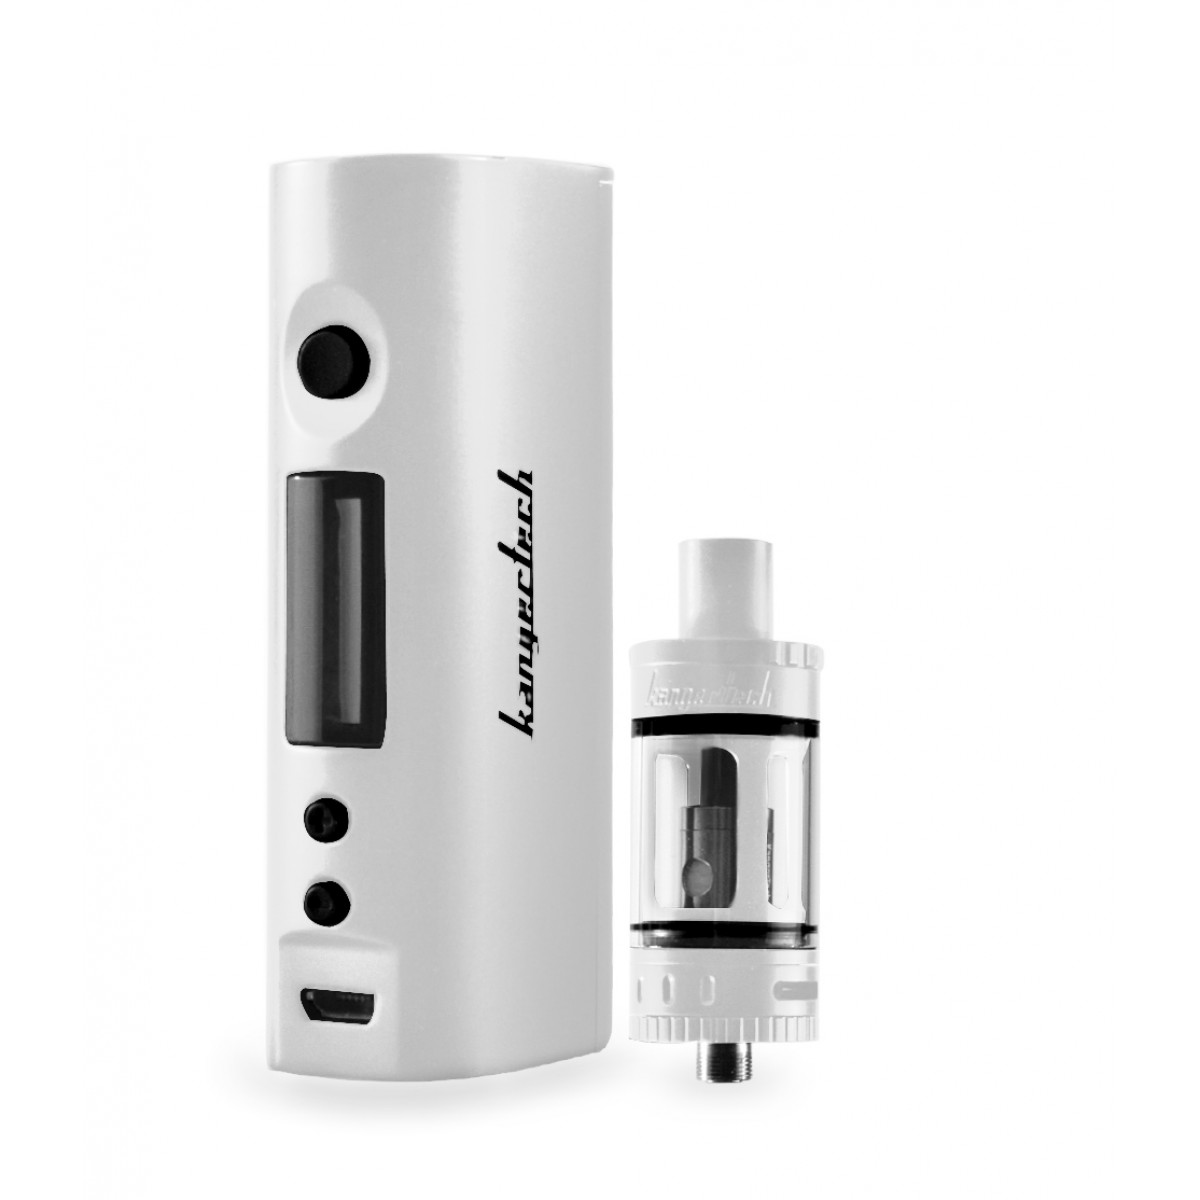 Kanger TopBox Mini Top Load Starter Kit